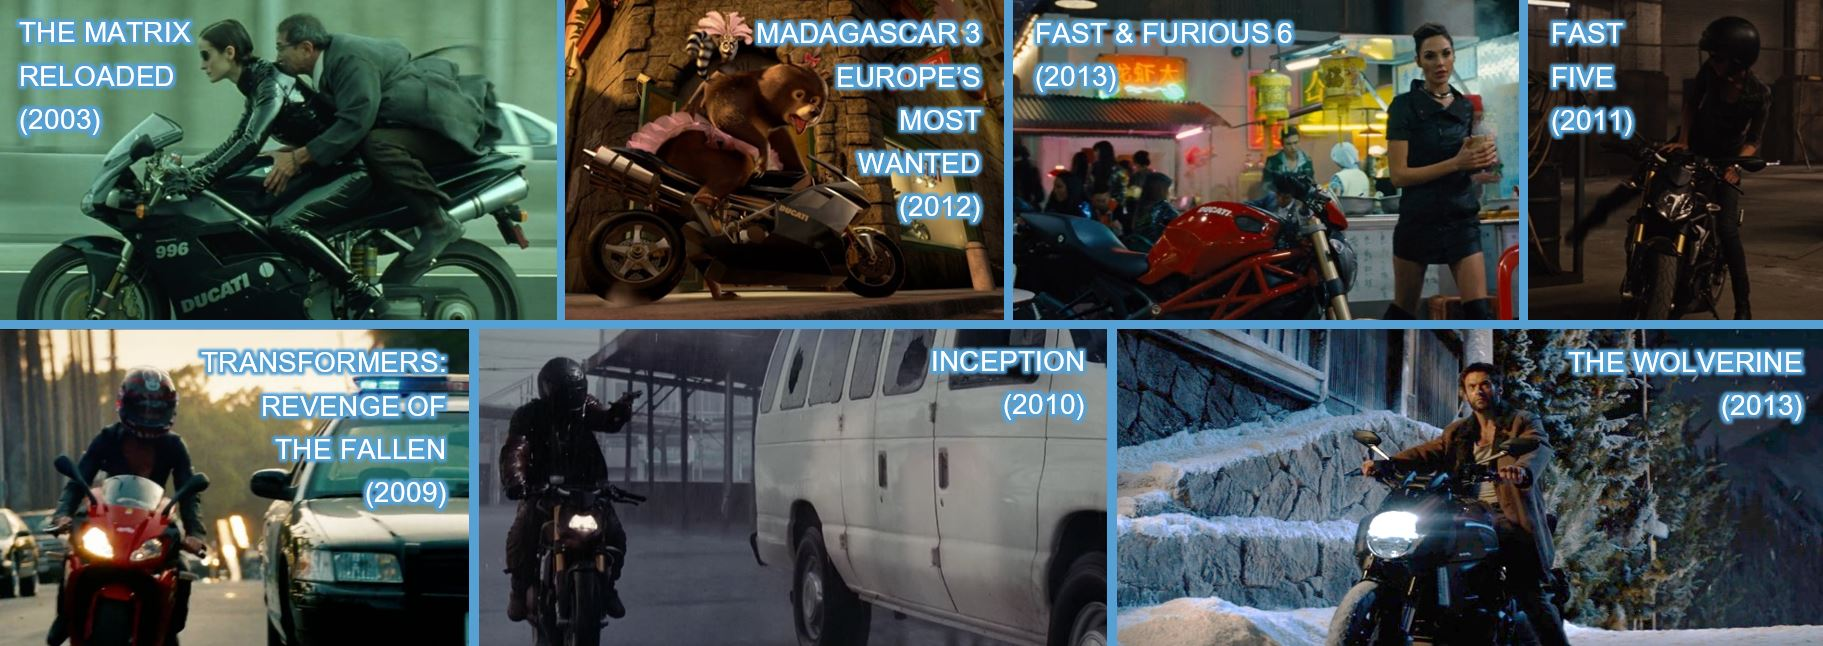 ducati teenage mutant ninja turtles TMNT out of the shadows Brand branding product placement concave brand tracking lenovo the matrix madagascar 3 europe's most wanted fast and furious 6 fast & furious 6 fast five transformers revenge of the fallen inception the wolerine motorcycle